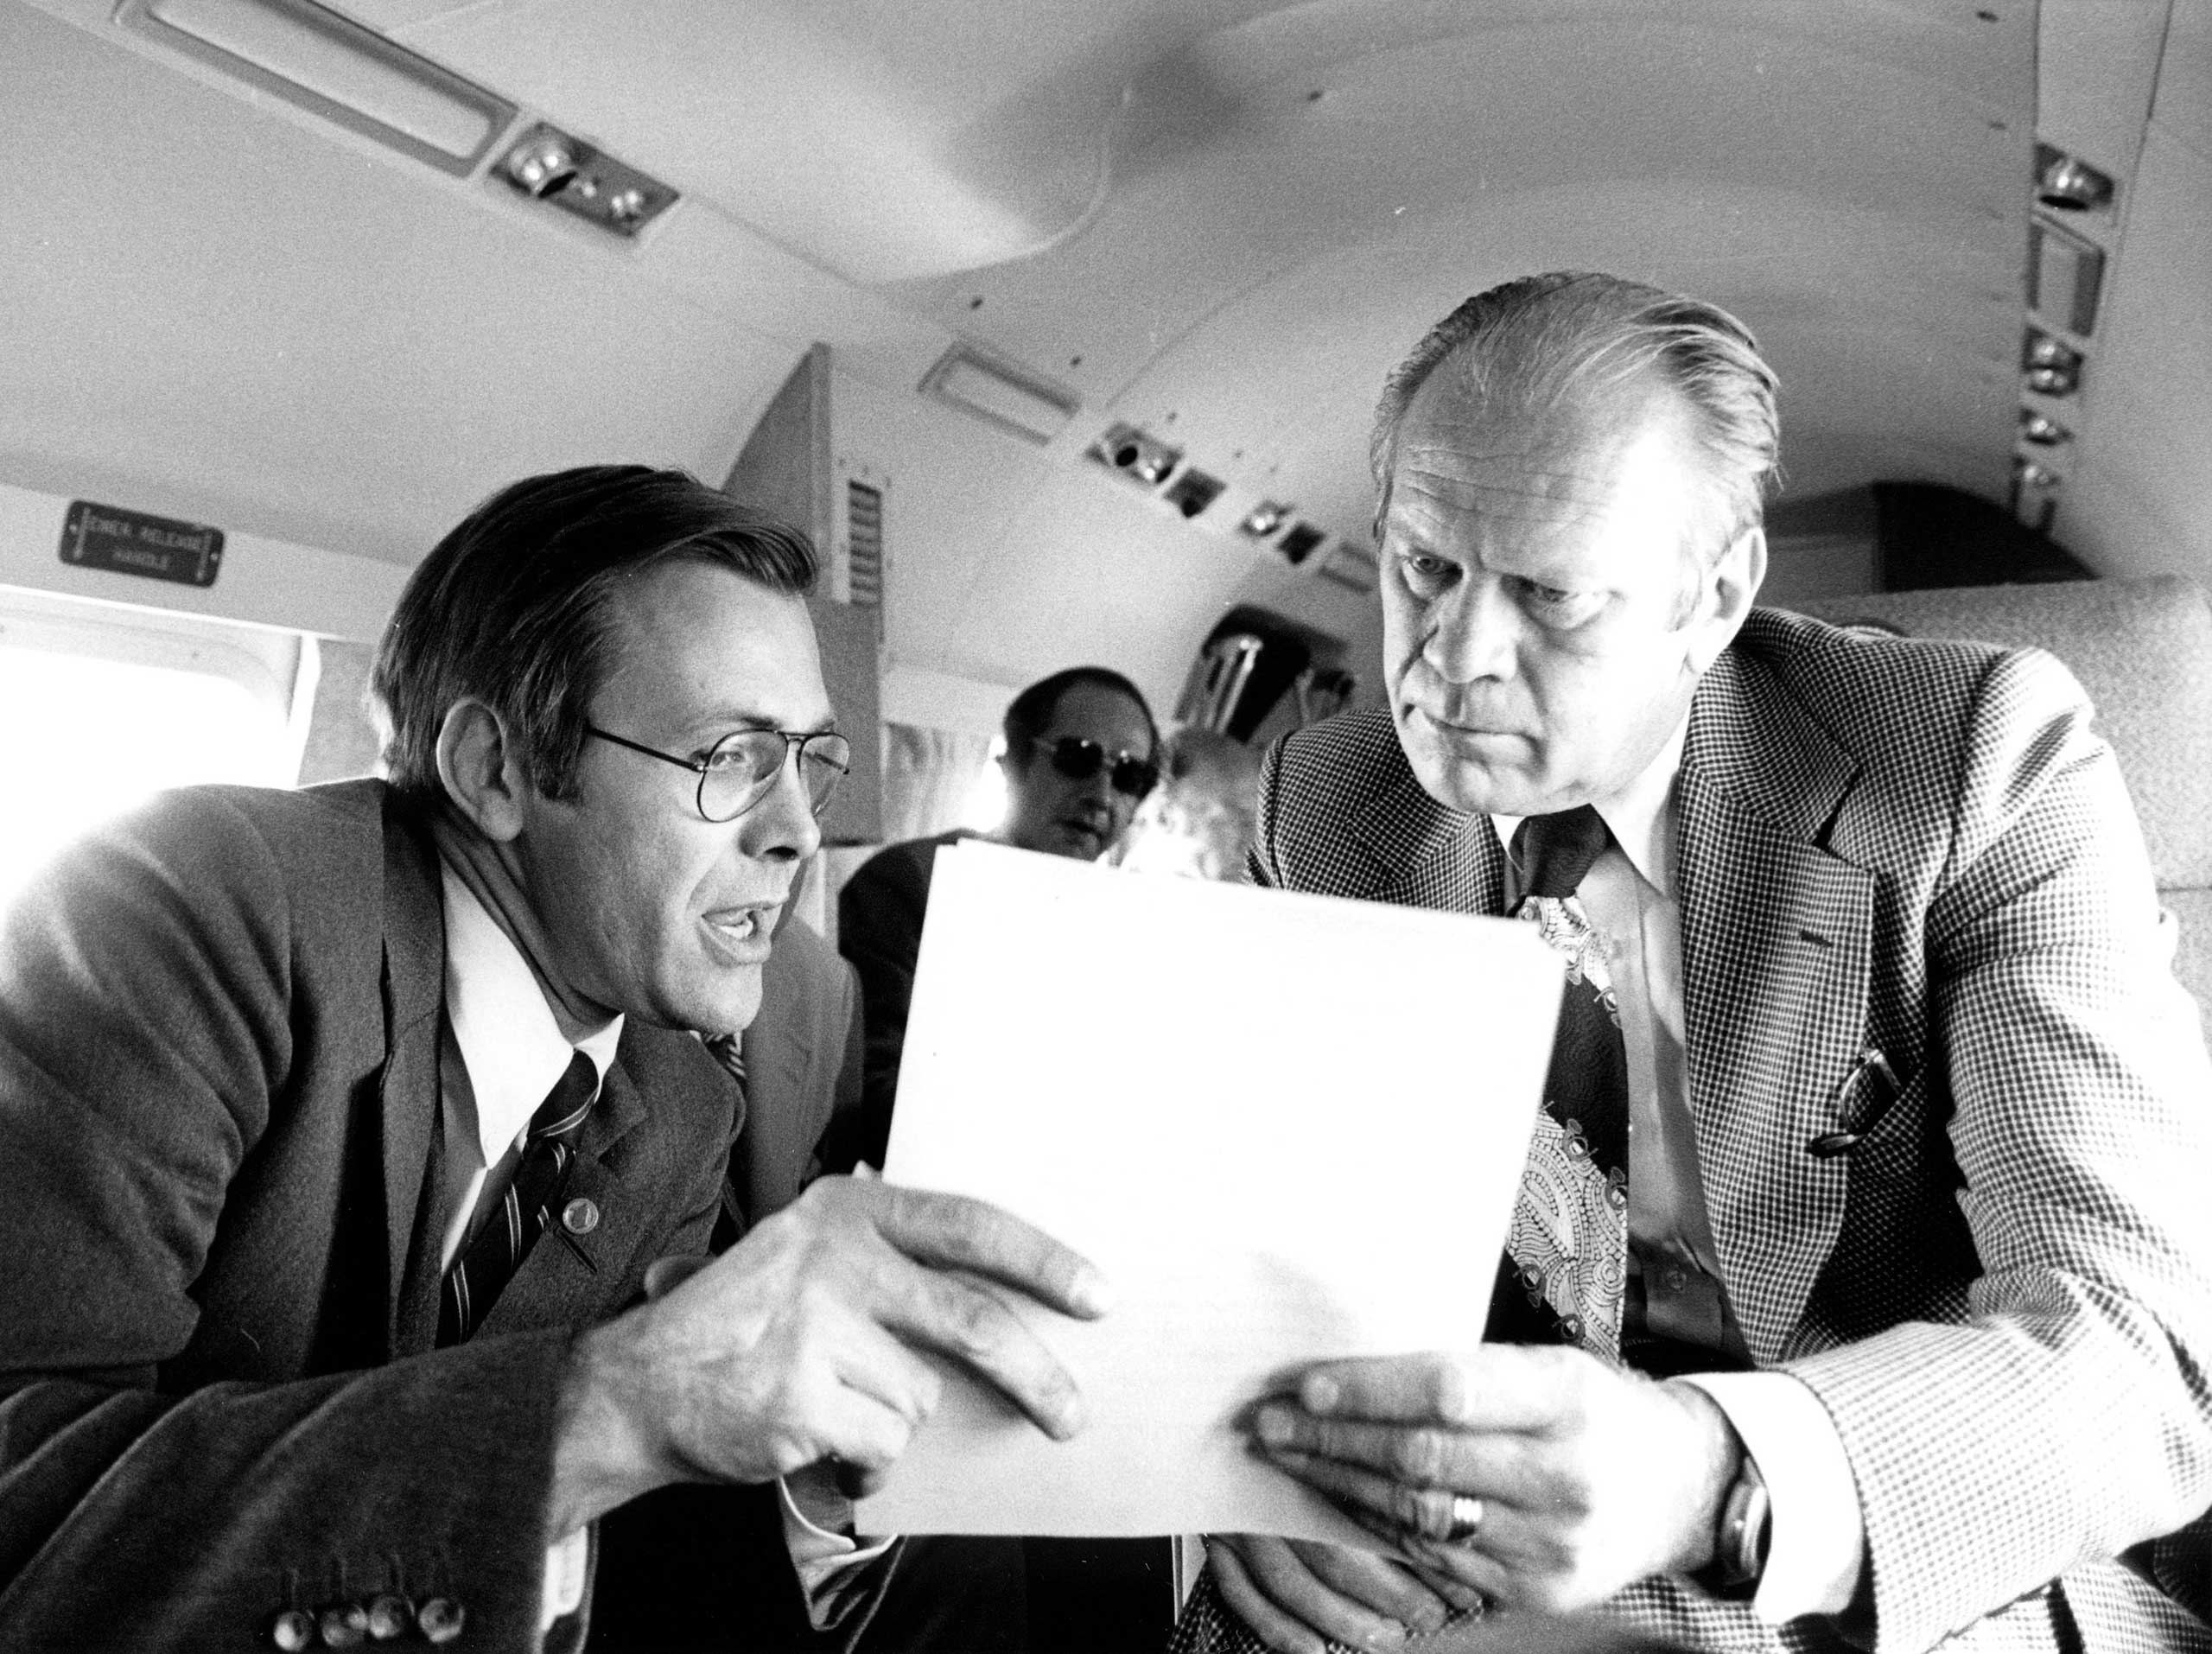 Freedom of Information Act, Ford, 1974 President Ford vetoed the Freedom of Information Act, which would make many classified records public, out of concern that it would endanger national security. But with the memory of the Watergate scandal still fresh, Congress voted overwhelmingly to override the veto. (Photo: Donald Rumsfeld and President Ford on Marine One in 1974.)